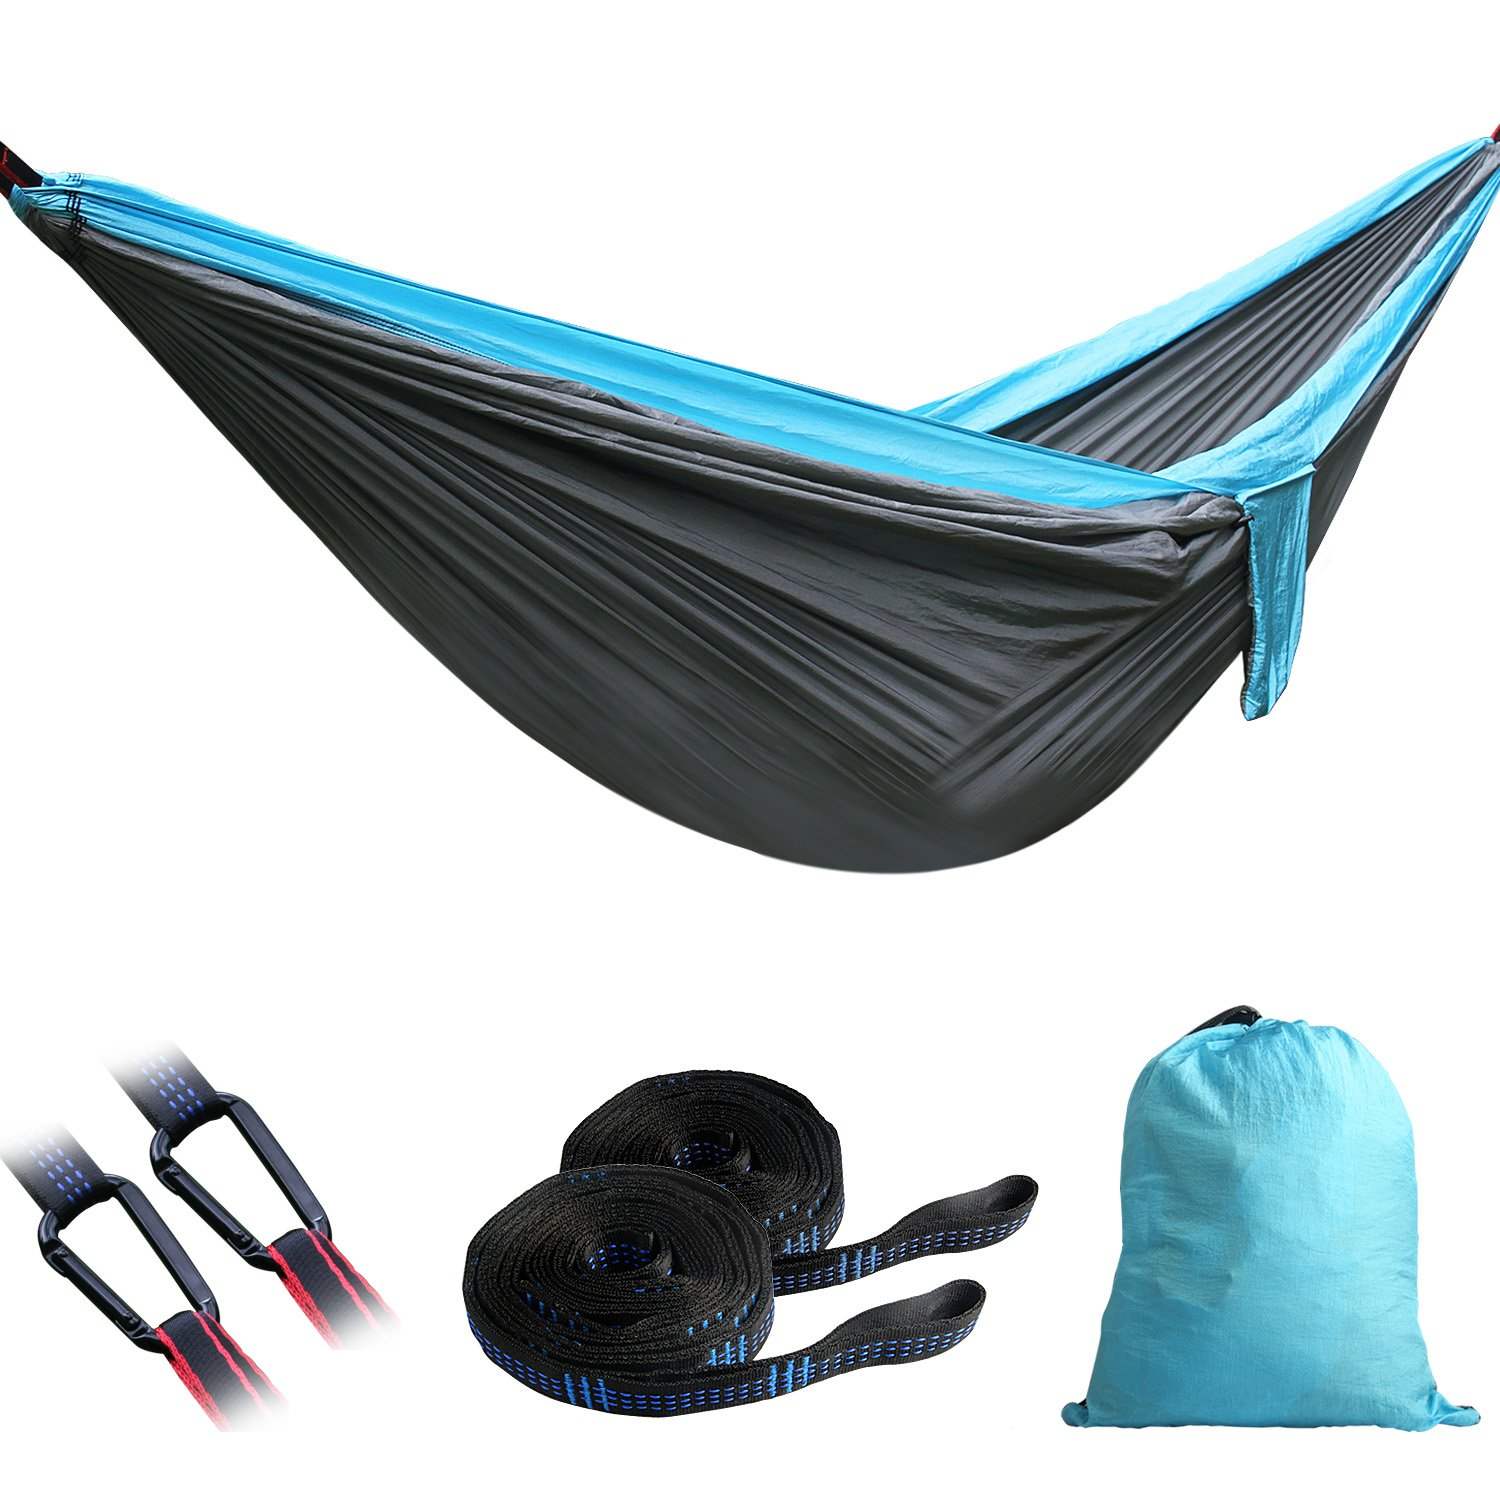 Camping Hammocks Garden Hammock Ultralight Portable Nylon Parachute Multifunctional Lightweight Hammocks with 2 x Hanging Straps for Backpacking, Travel, Beach, Yard - 118L x 78W Inches (holds 600lbs)